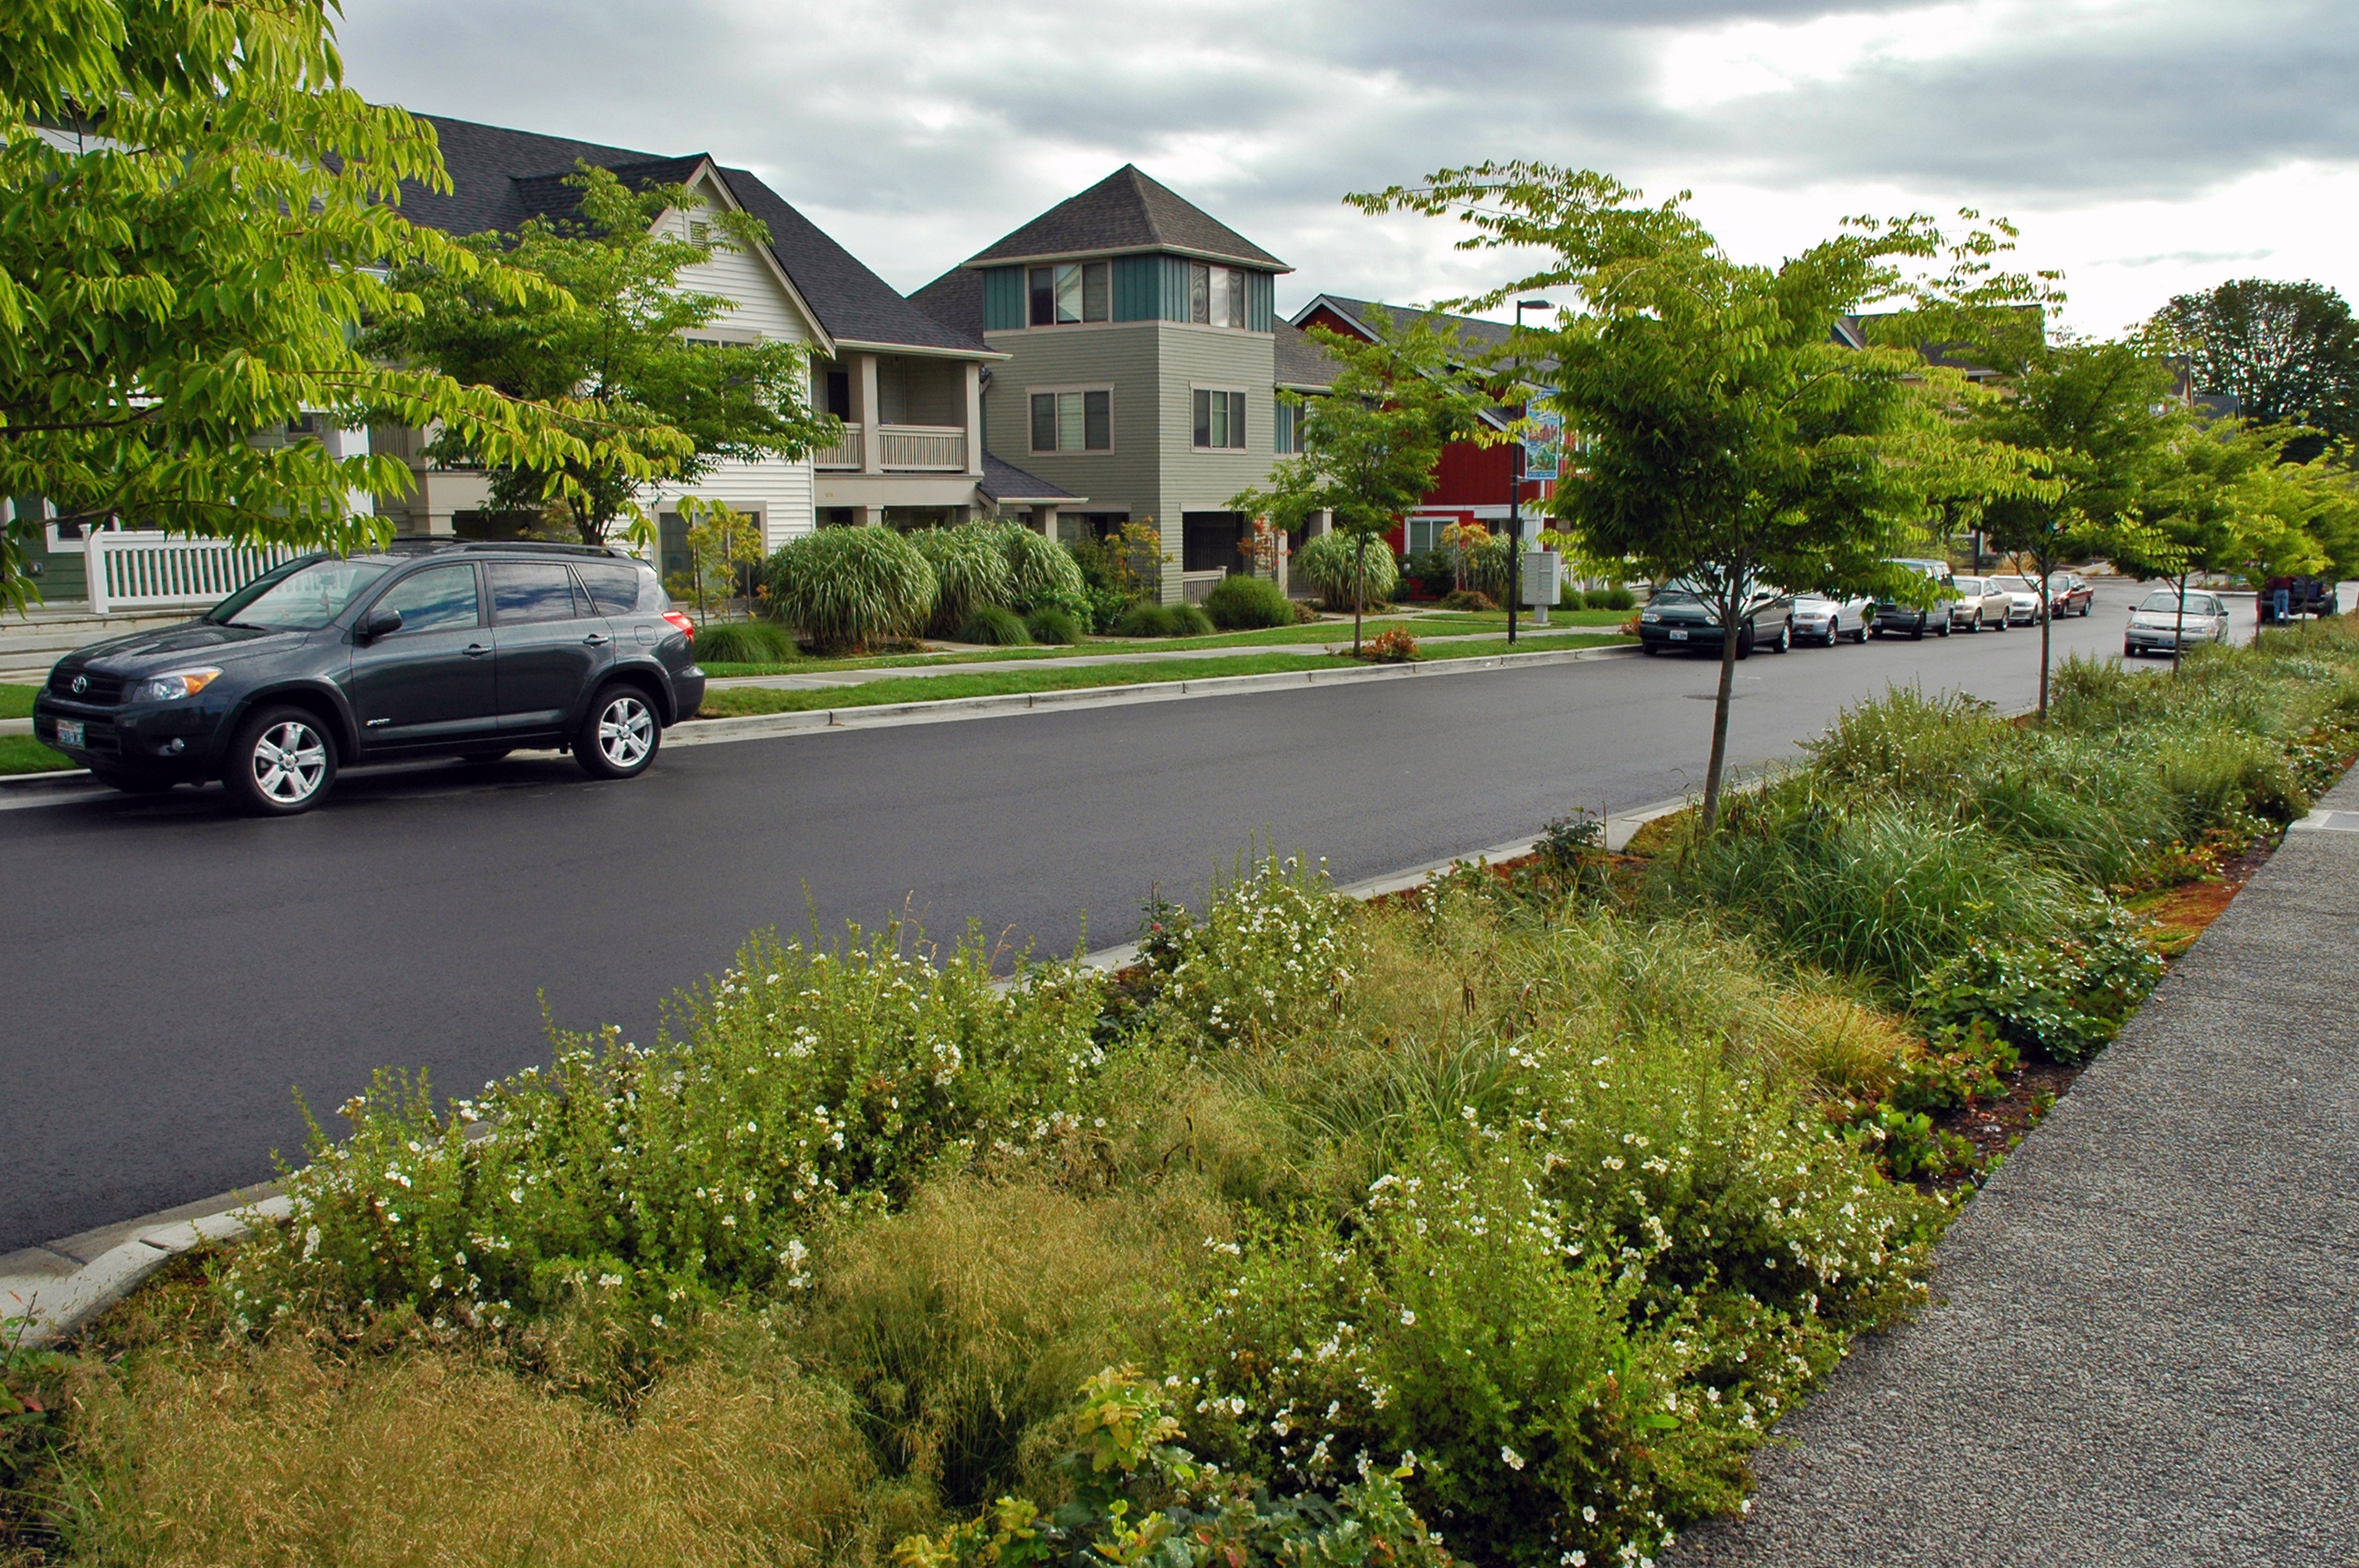 Open House Design additionally Small Sustainable Home Design moreover Contemporary Landscape Design further  moreover Small Sustainable Home Design. on sustainable practices for landscape design vegetated swales